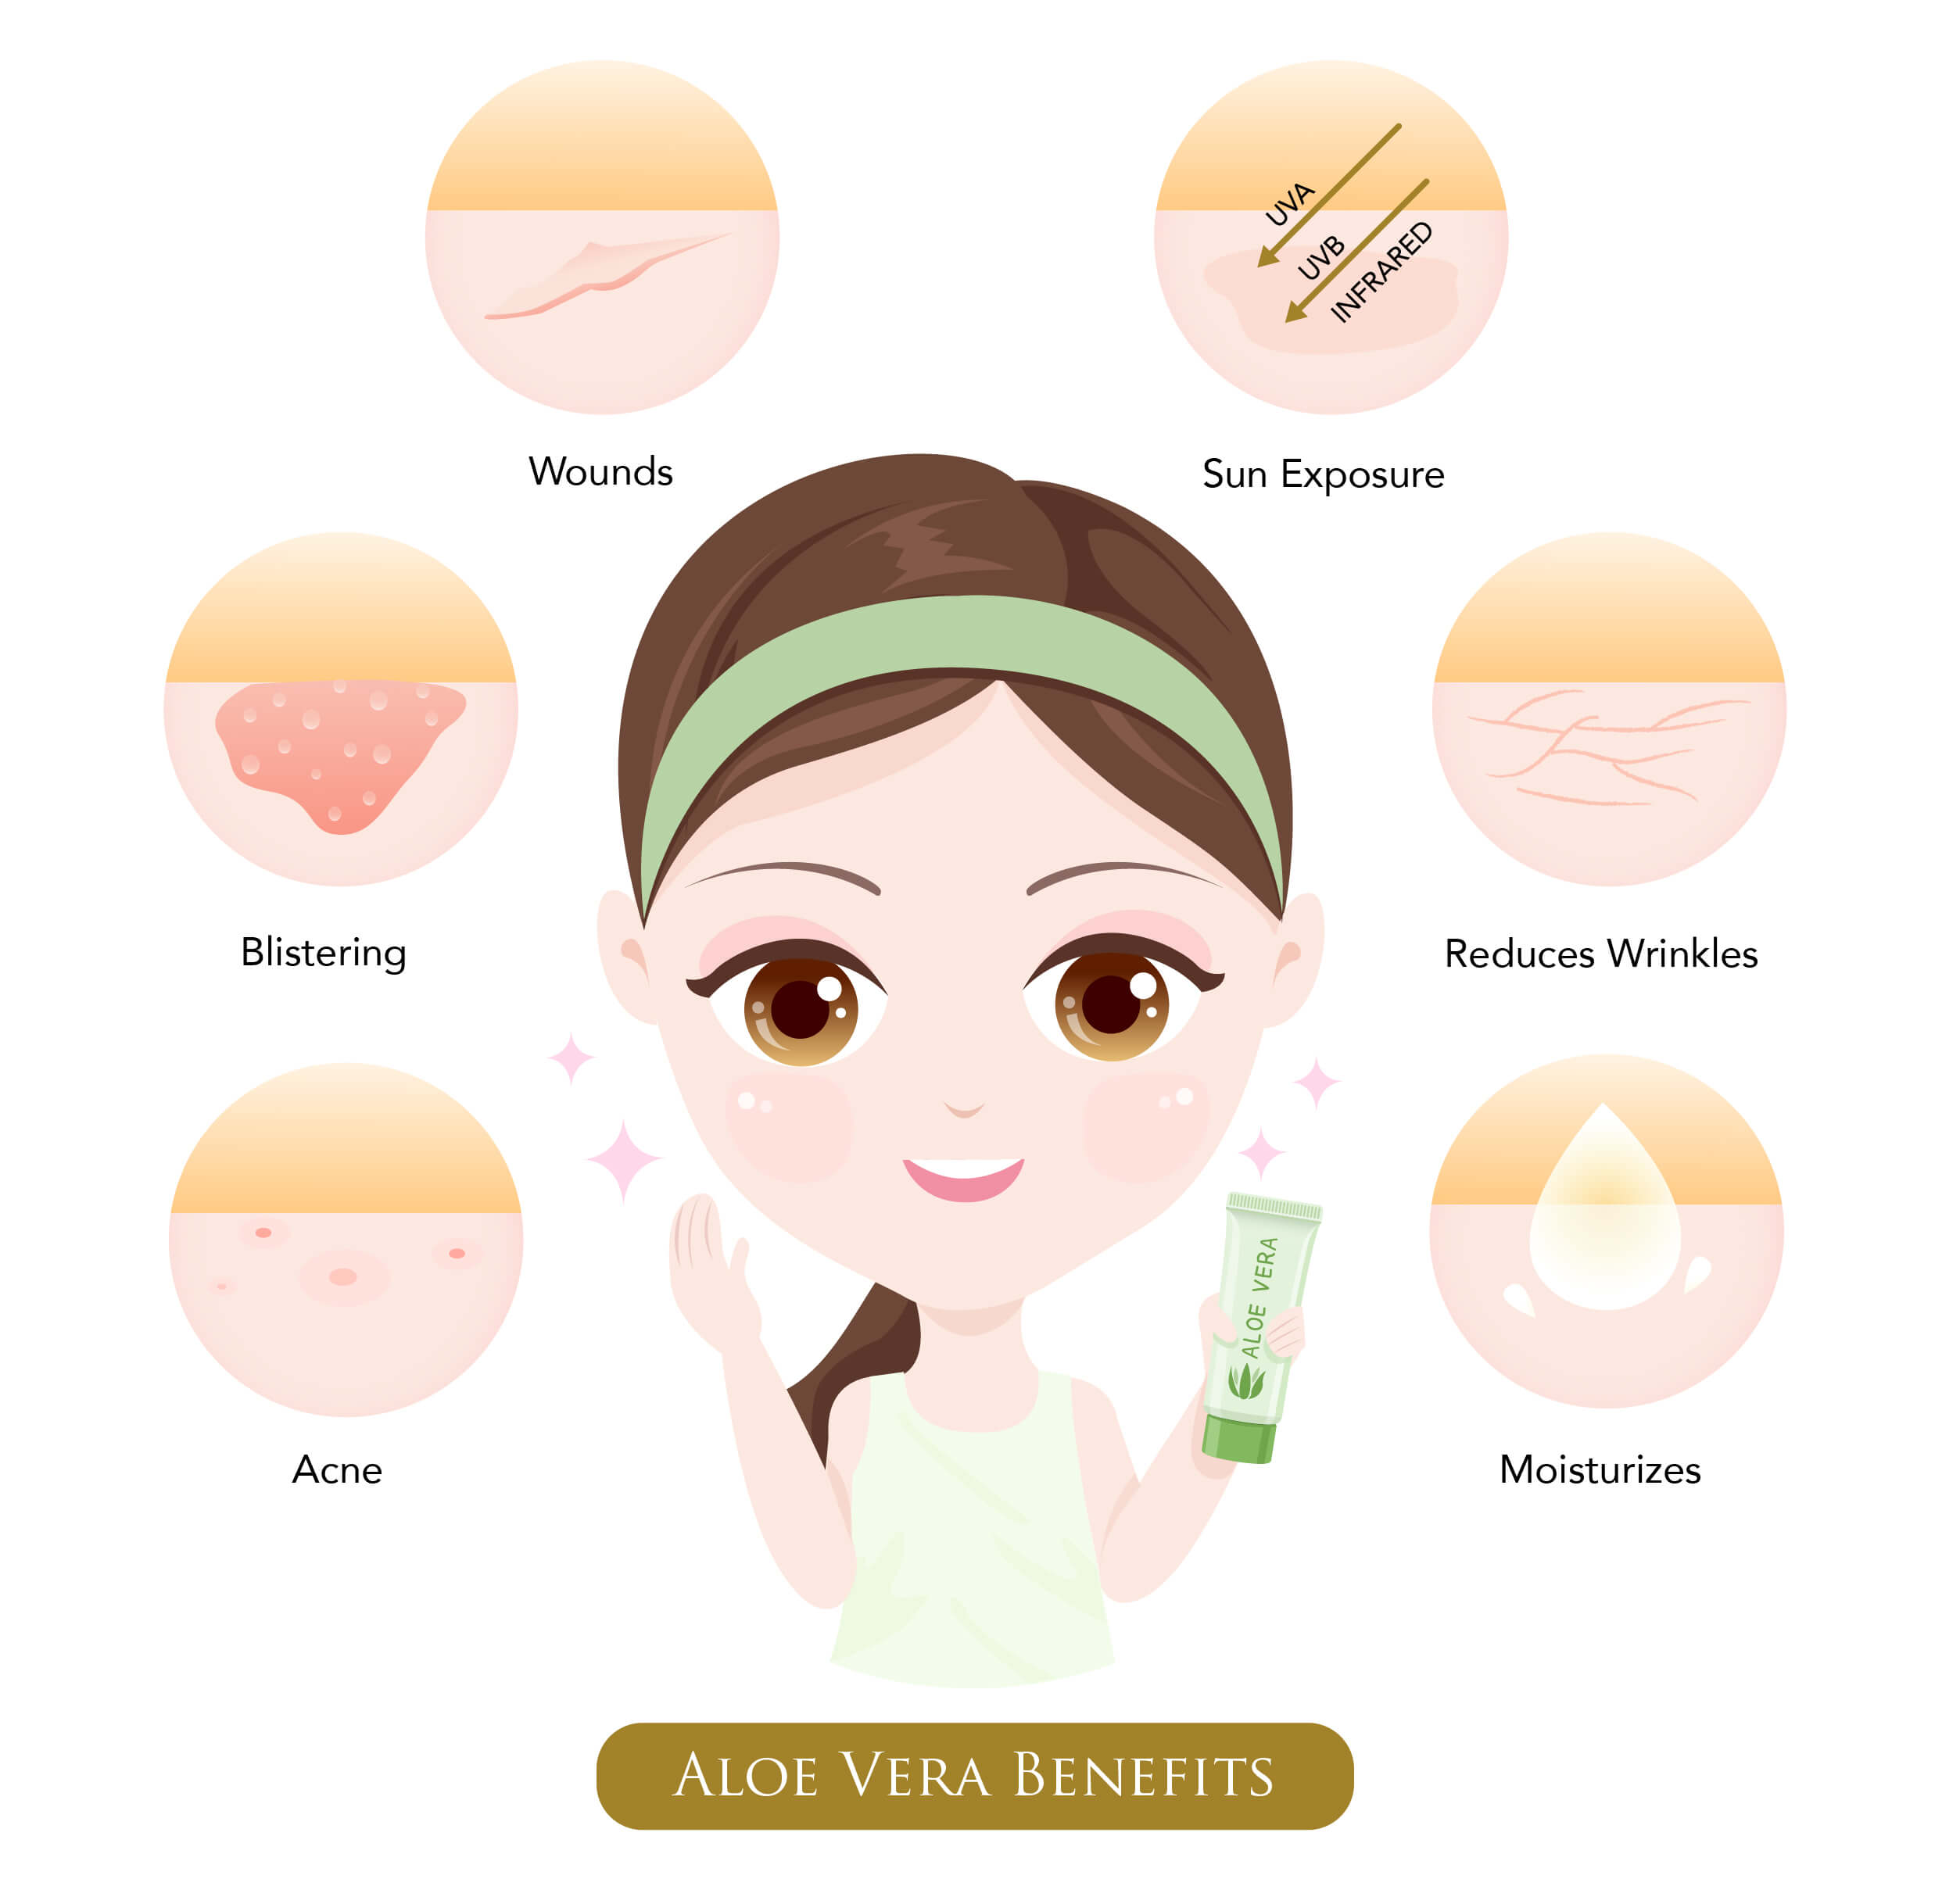 Infographic on the benefits of aloe vera